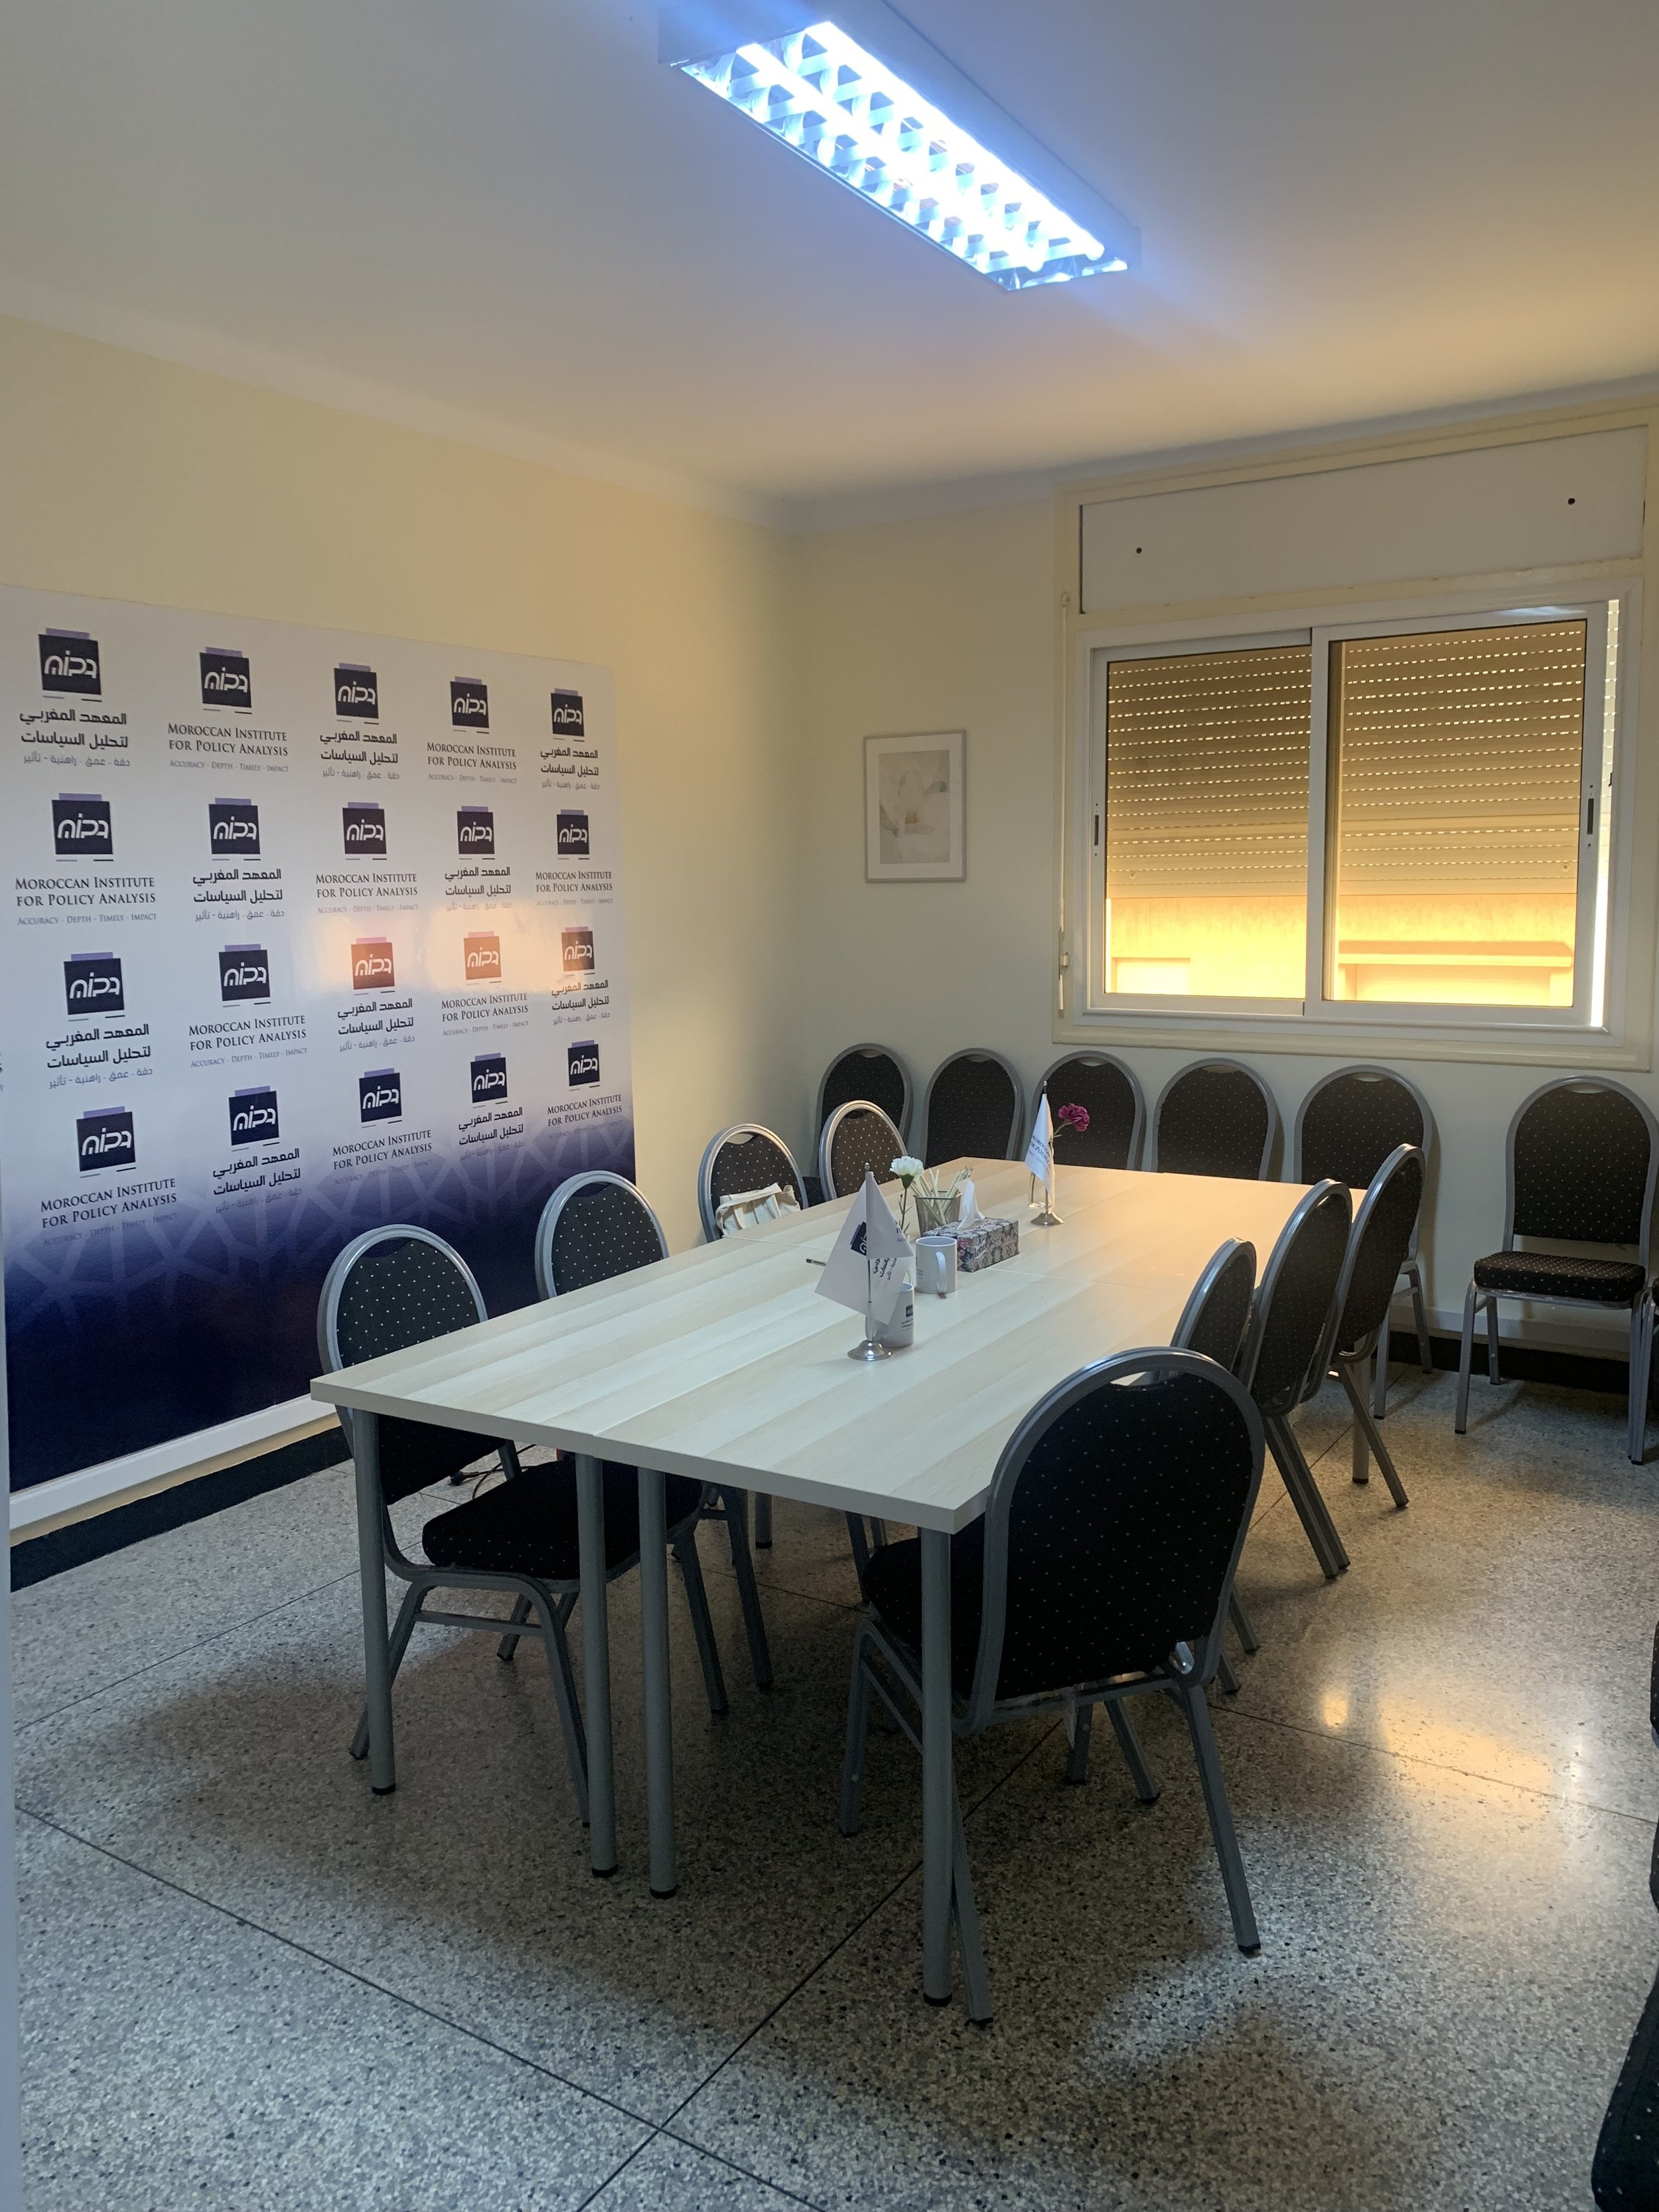 Conference room at MIPA where meetings and visits take place. Photo credit: Aboko-Cole, 2019